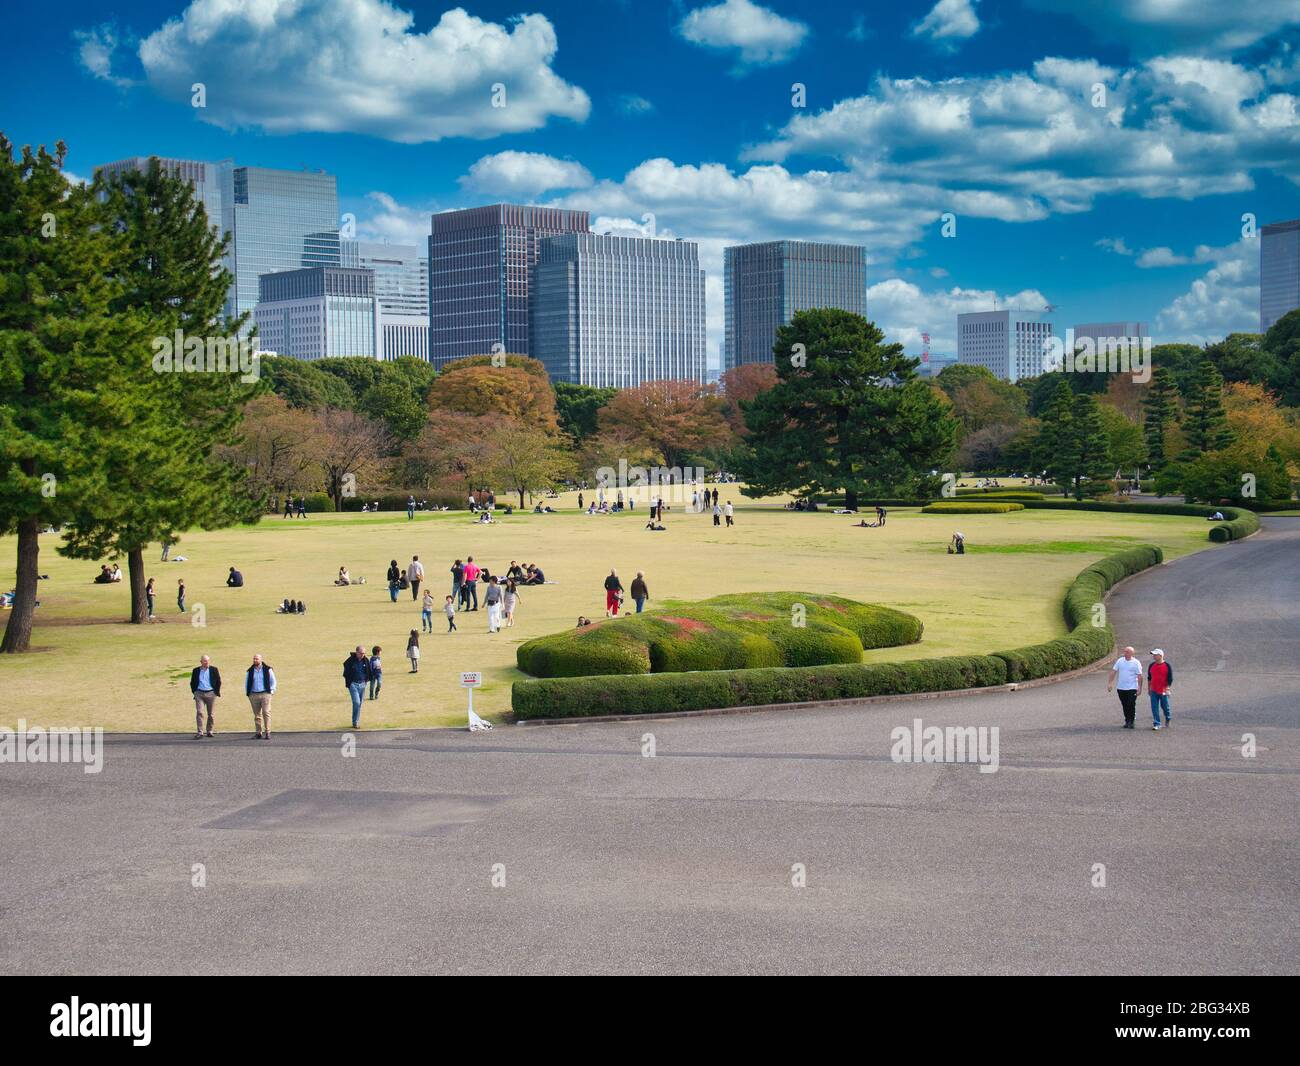 With a backdrop of city skyscrapers, a view the Imperial Palace East Gardens in Tokyo Stock Photo